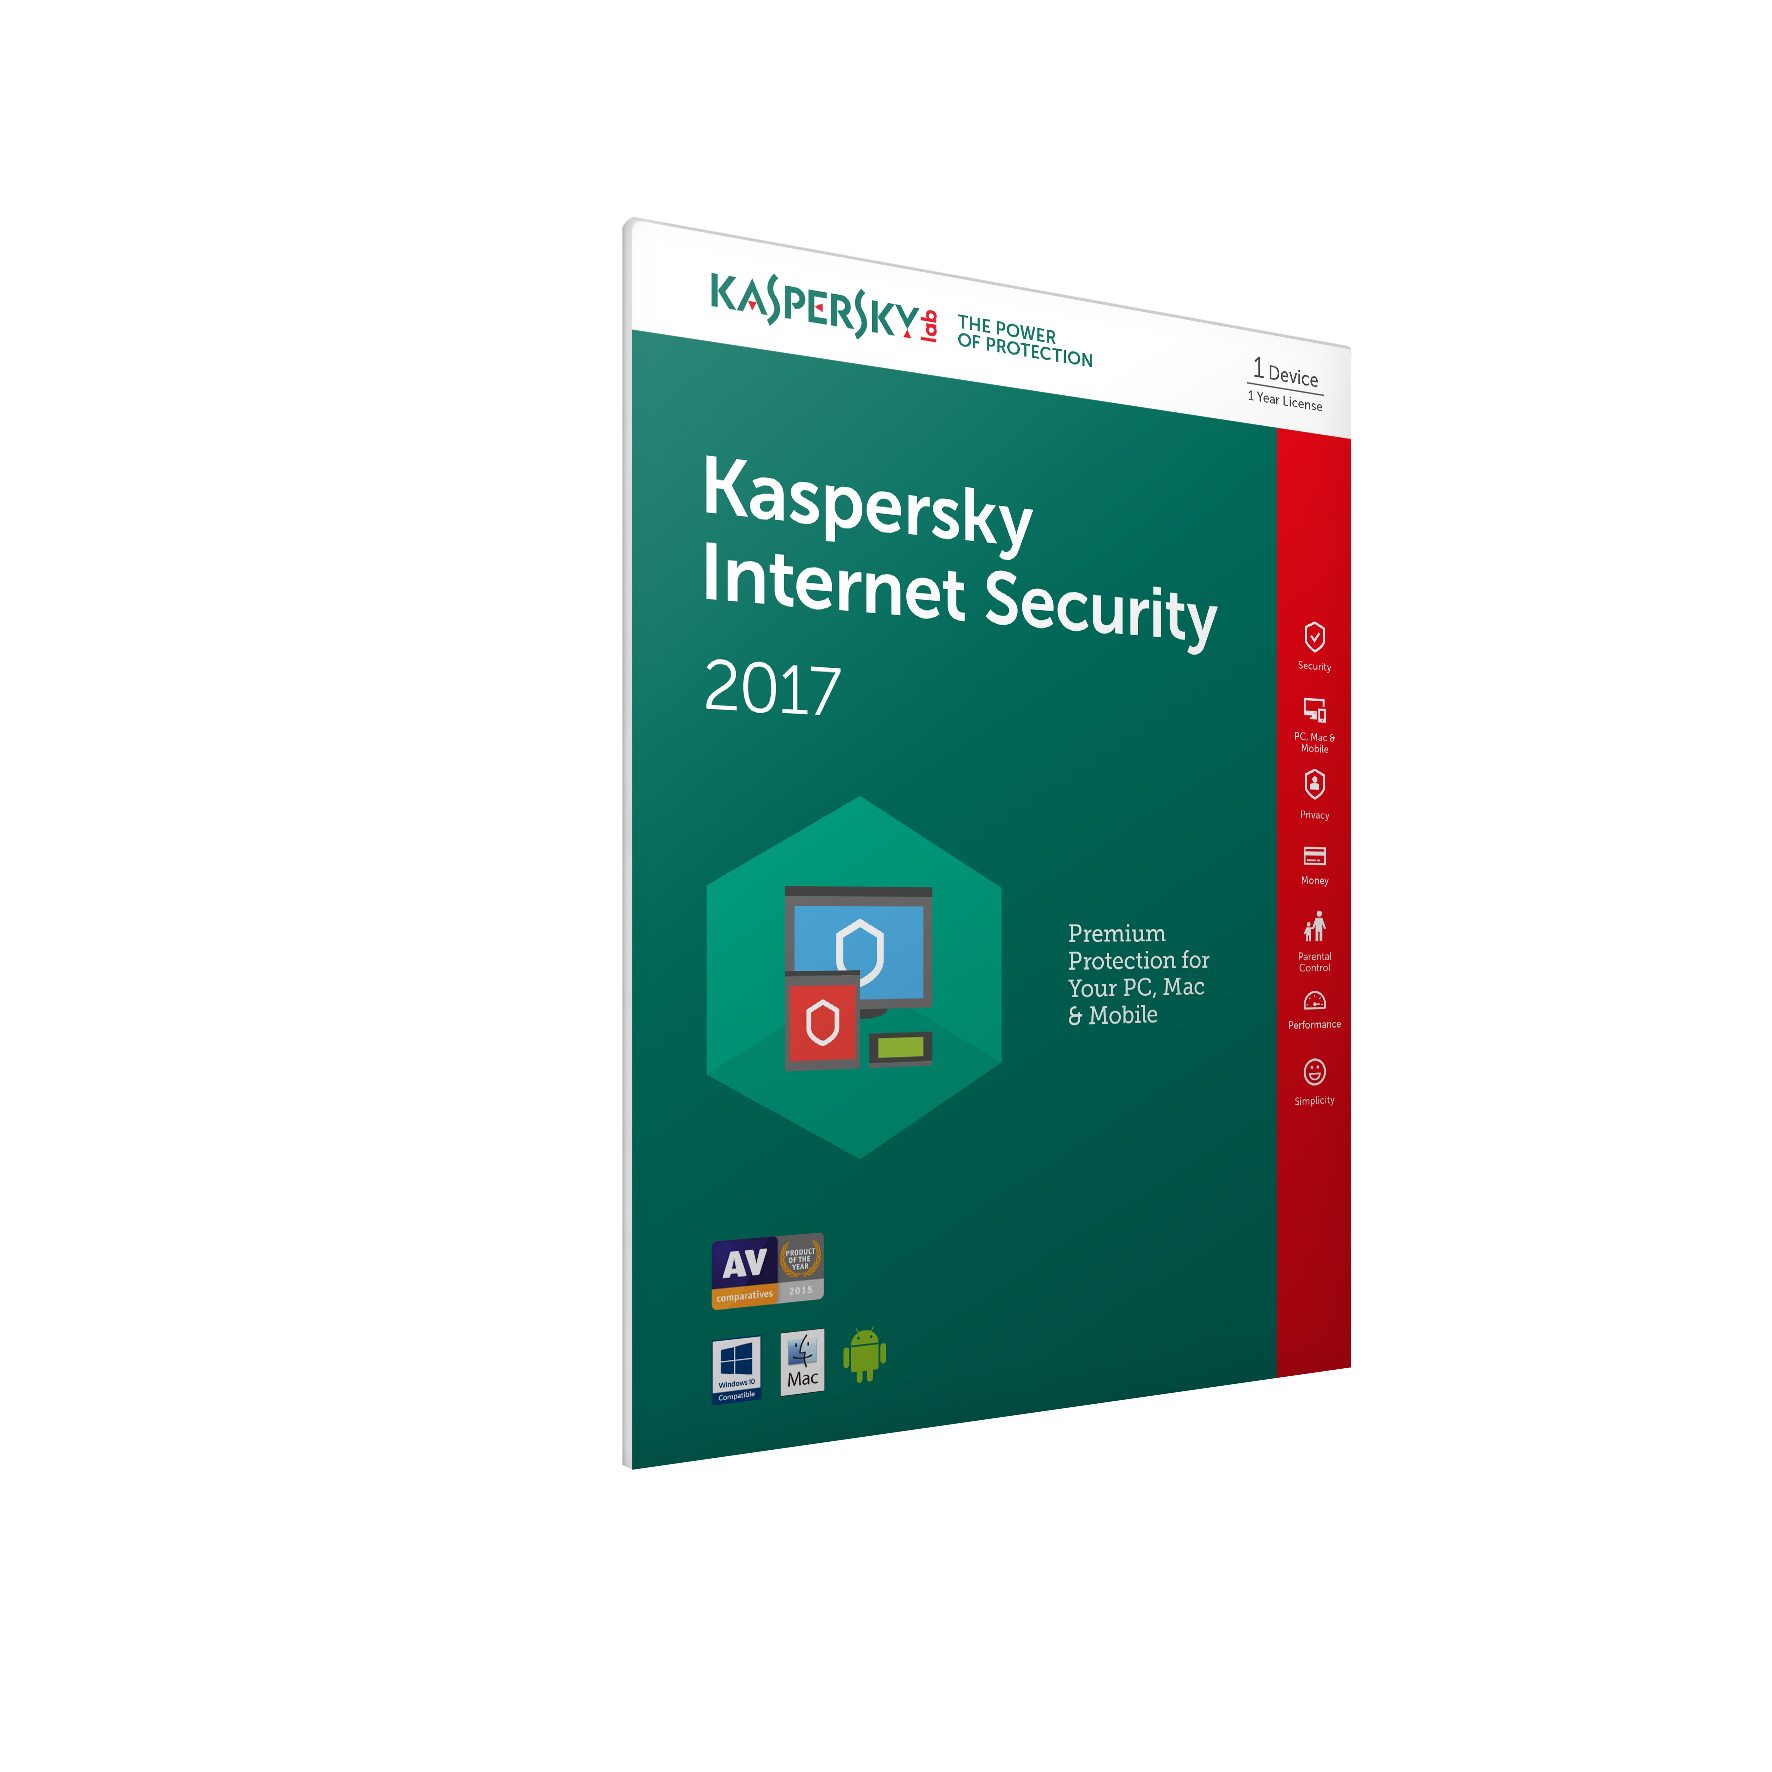 Kaspersky Lab Kaspersky Internet Security 2017 - 1 Devices 1 Year (Frustration Free Packaging)